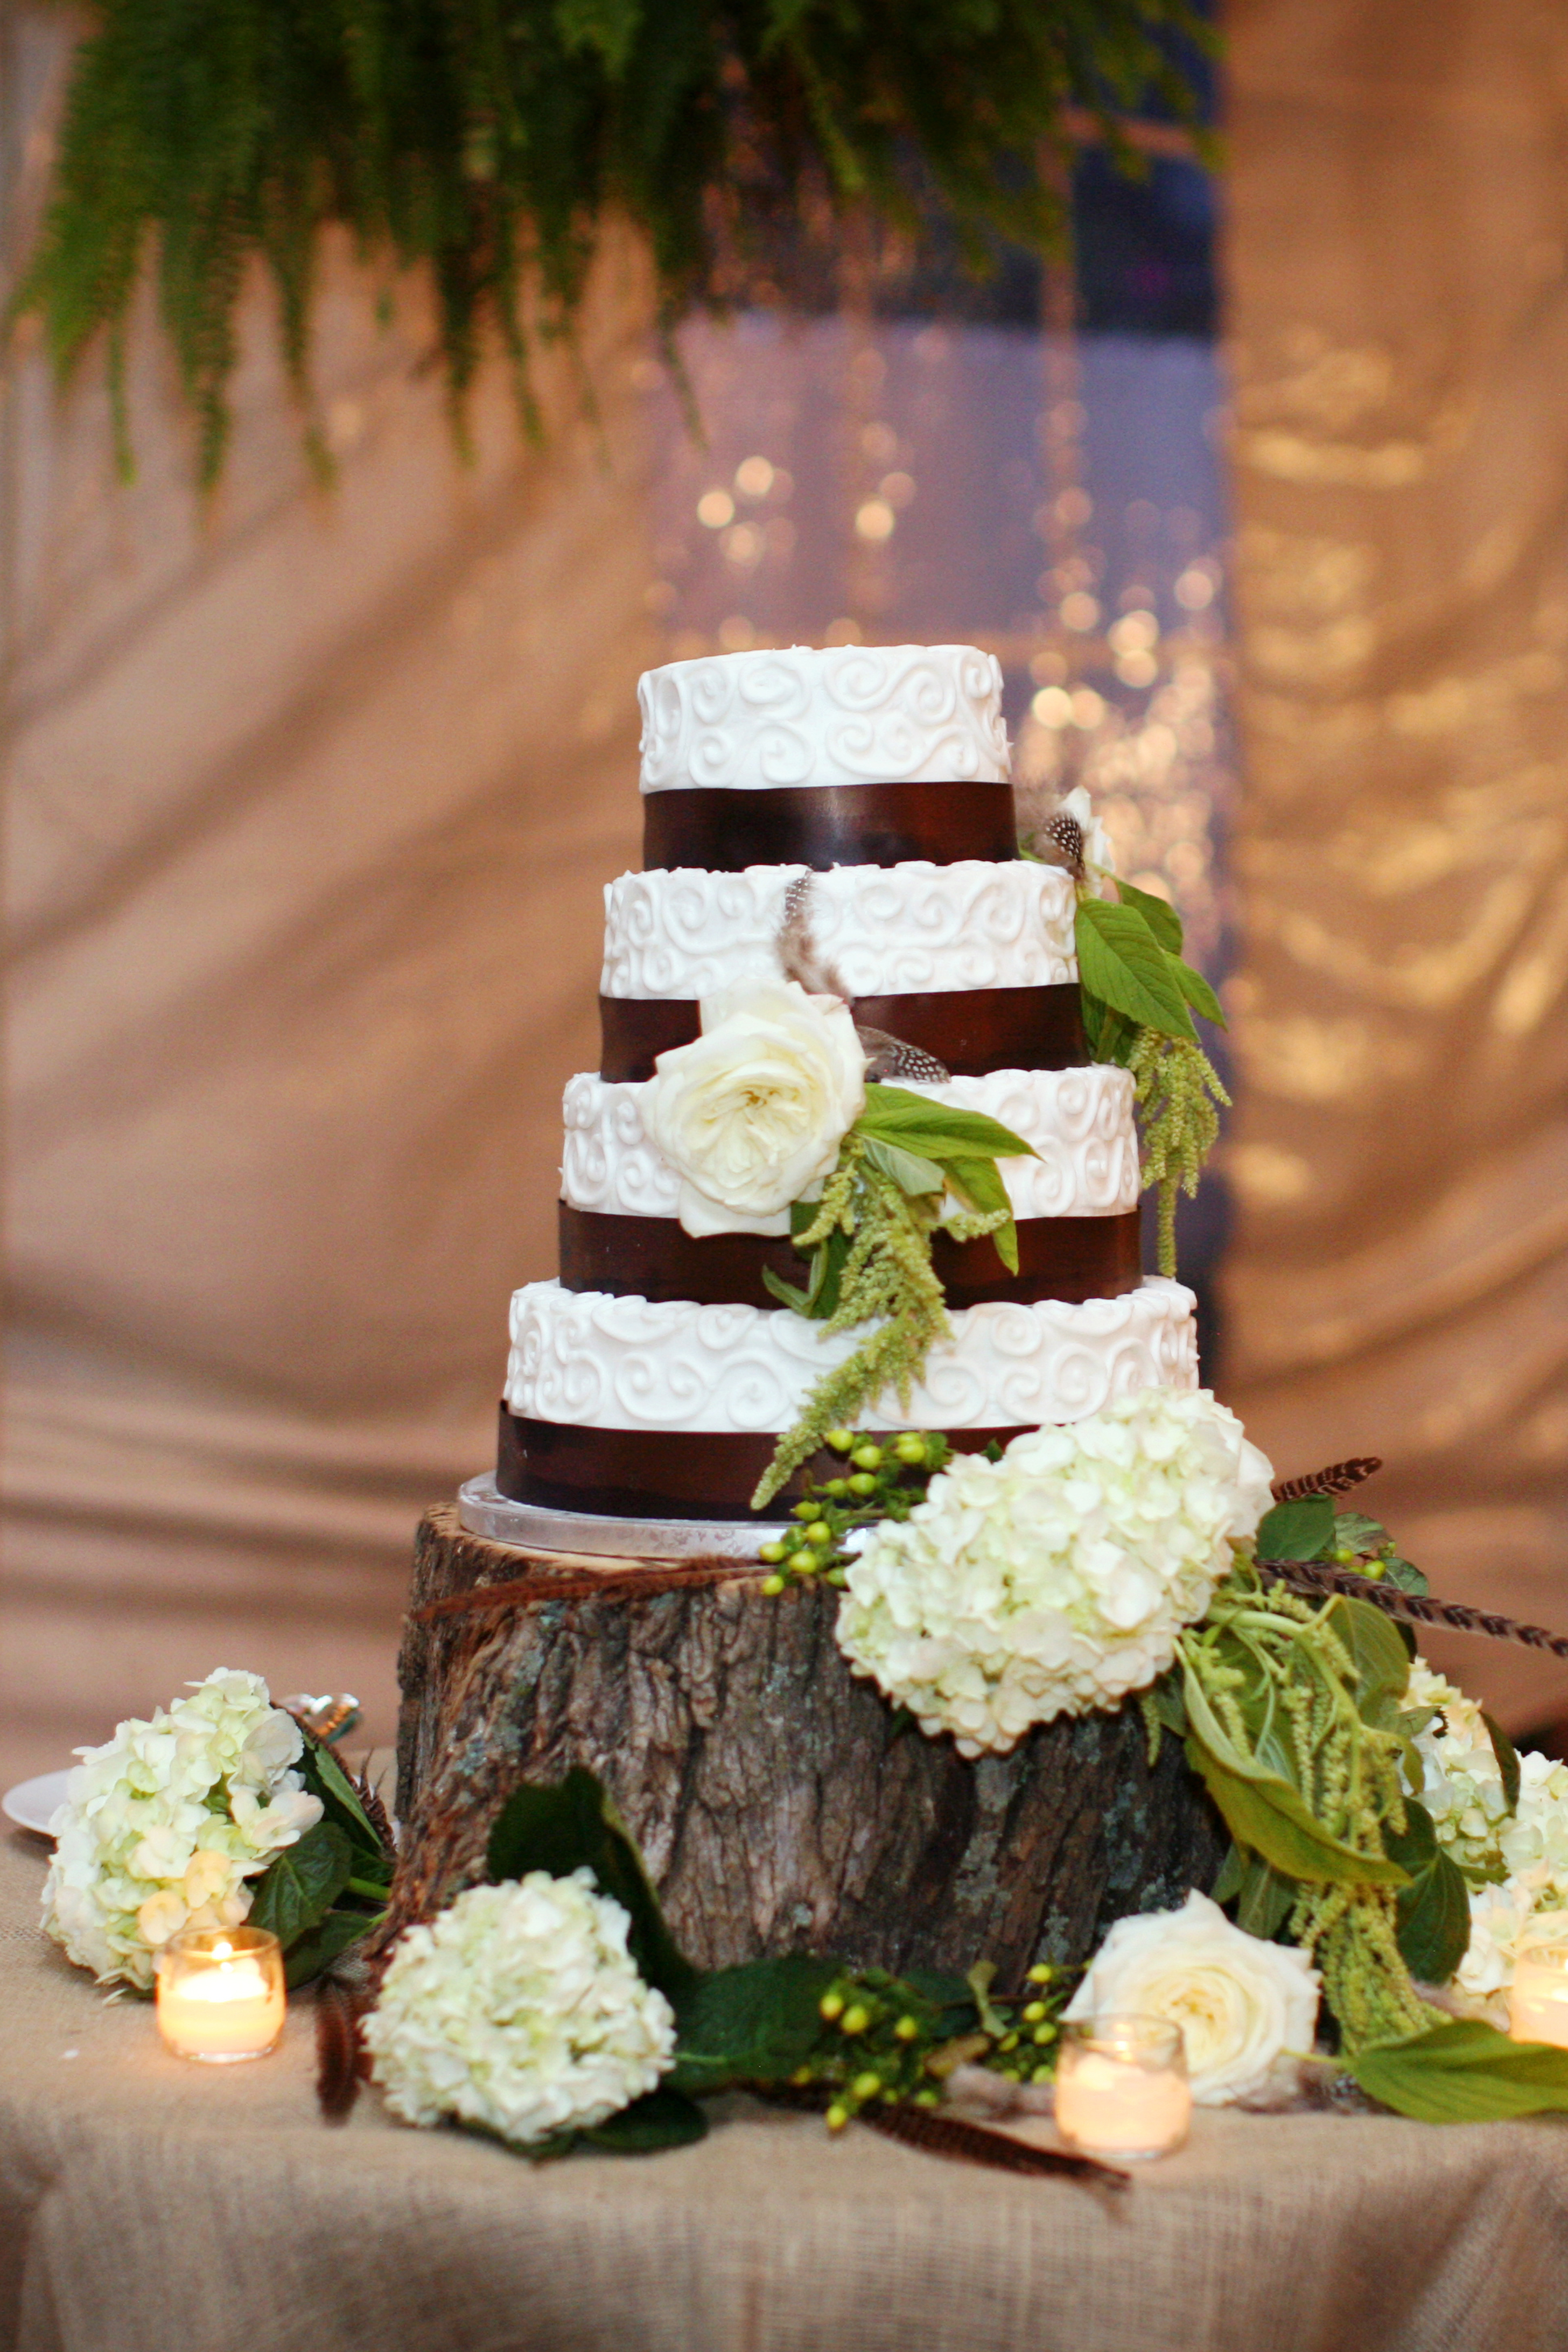 Cakes, brown, cake, Fall, Rustic, Stand, Autumn, Wood, Courtney sawyer